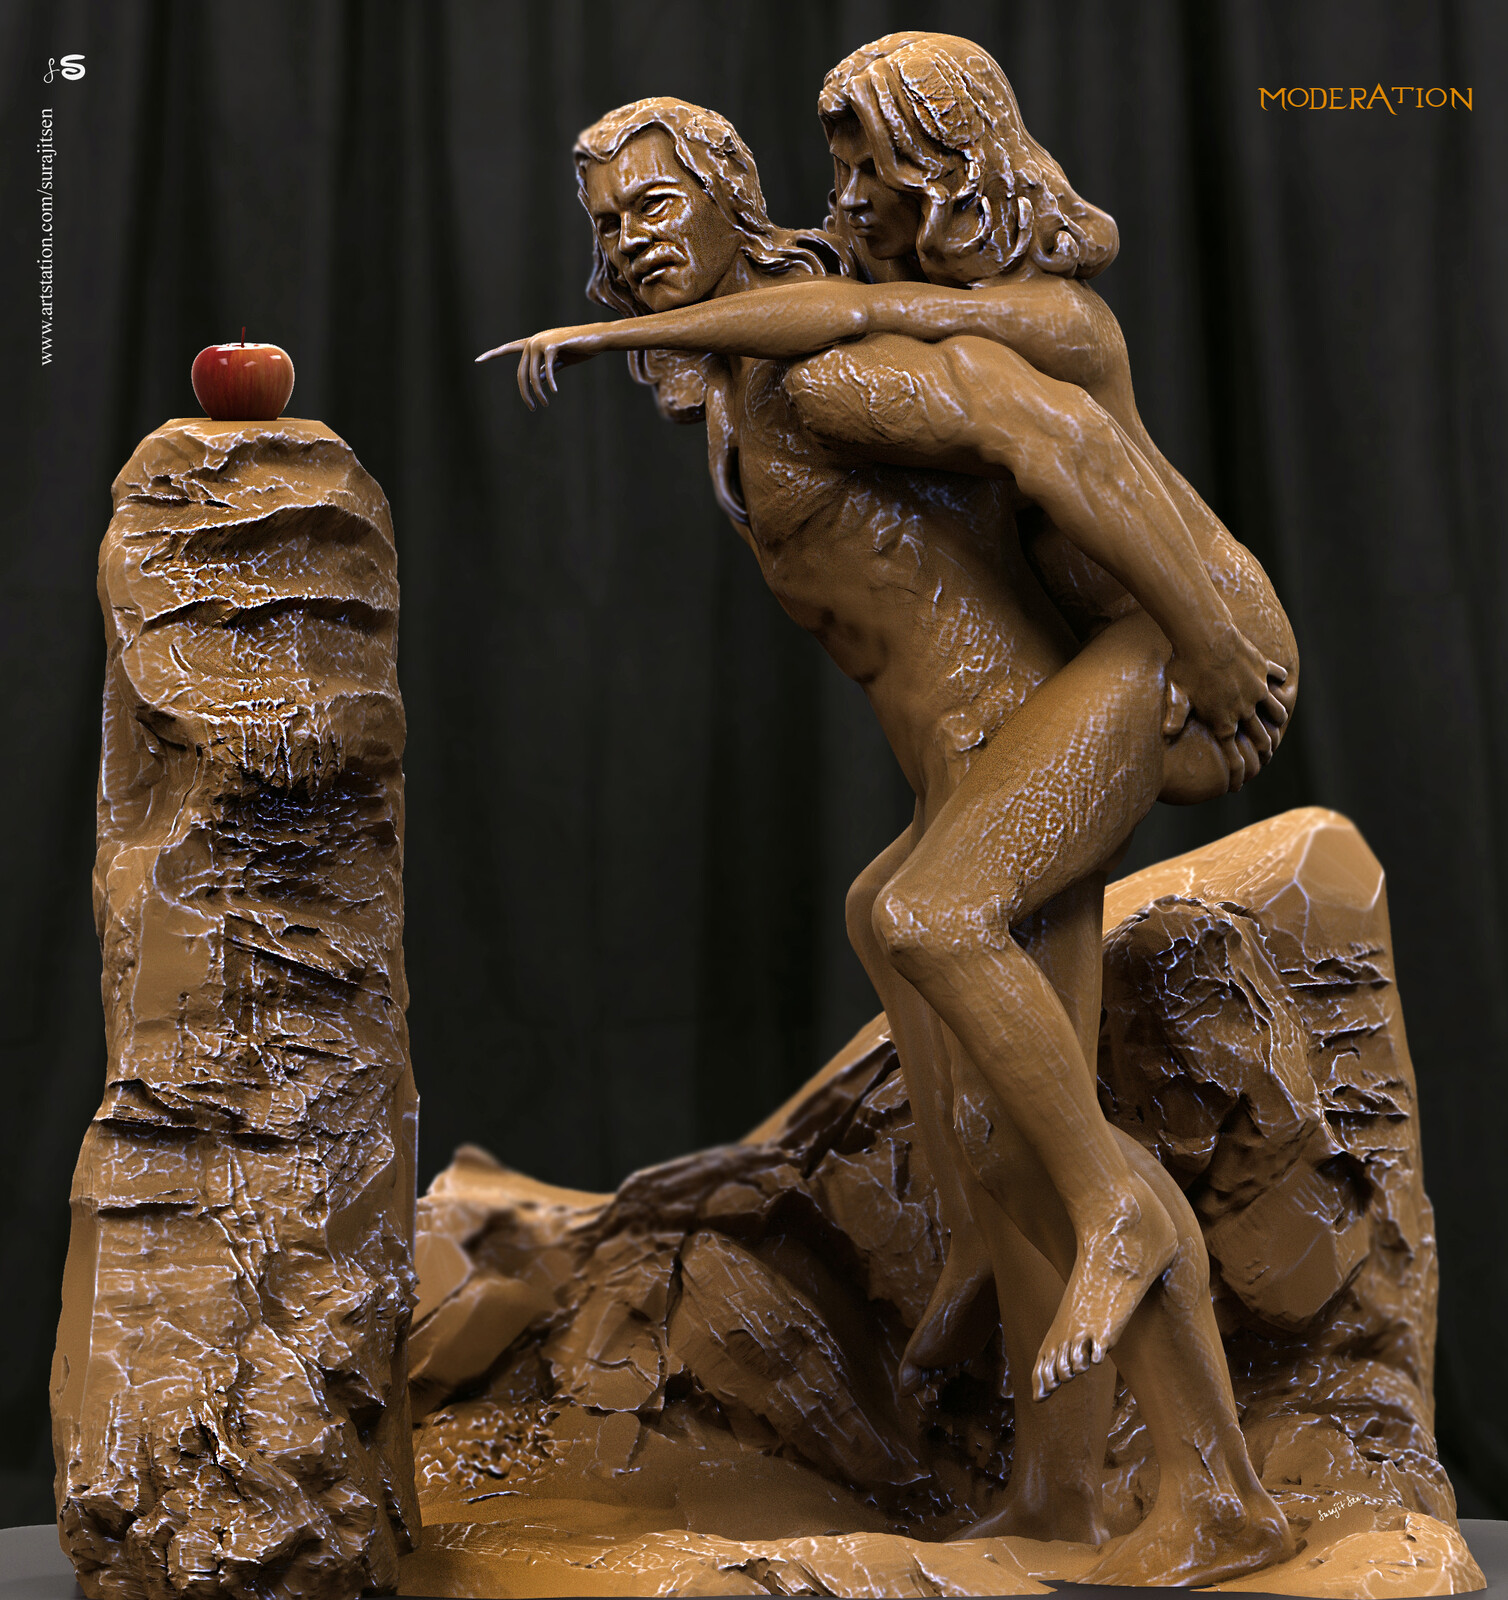 Moderation.